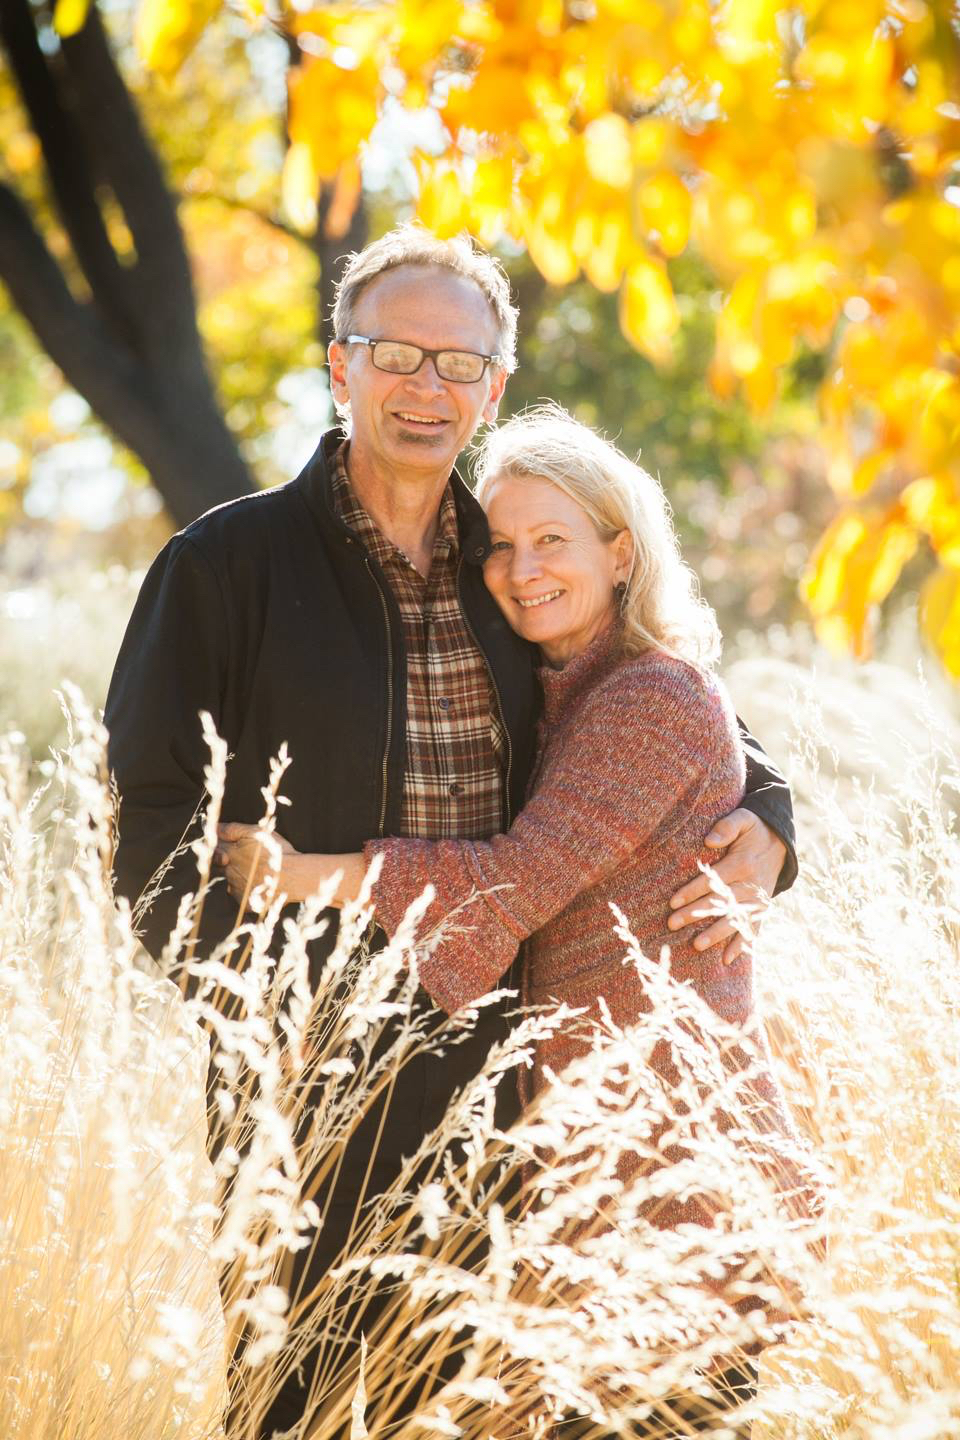 Our Story - Eric and Elise Gent have been managing their family business - the Railyard Performance Center - since 1996. The studio, which is home to the best dance floor in Northern New Mexico, supports classes, touring artists, performances and community events in the heart of Santa Fe.